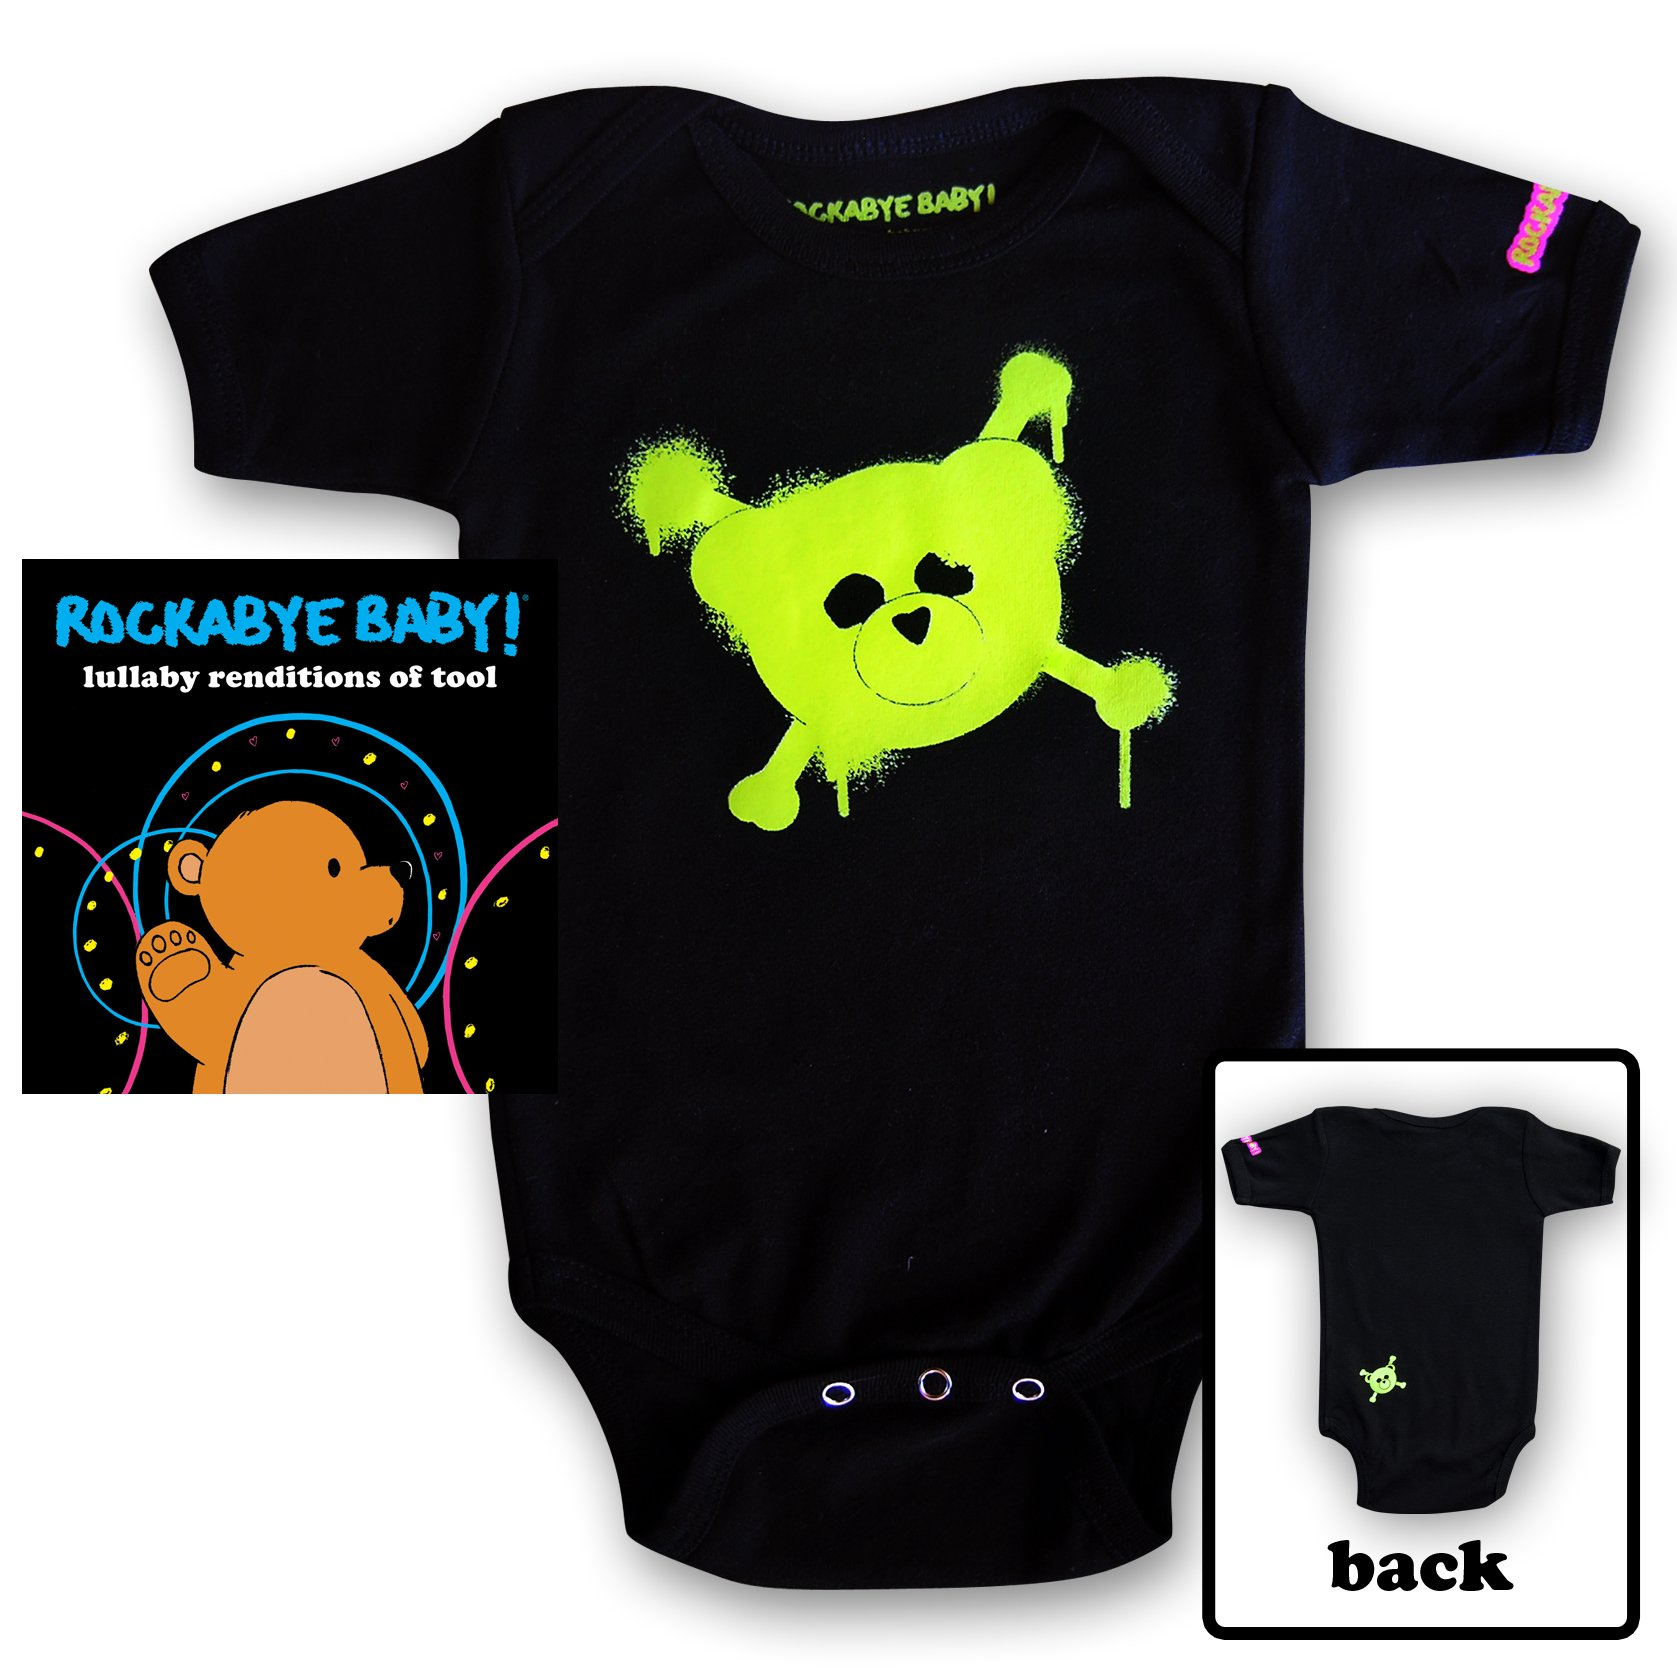 Rockabye Baby! Lullaby Renditions of Tool + Organic Baby Bodysuit (Green) by